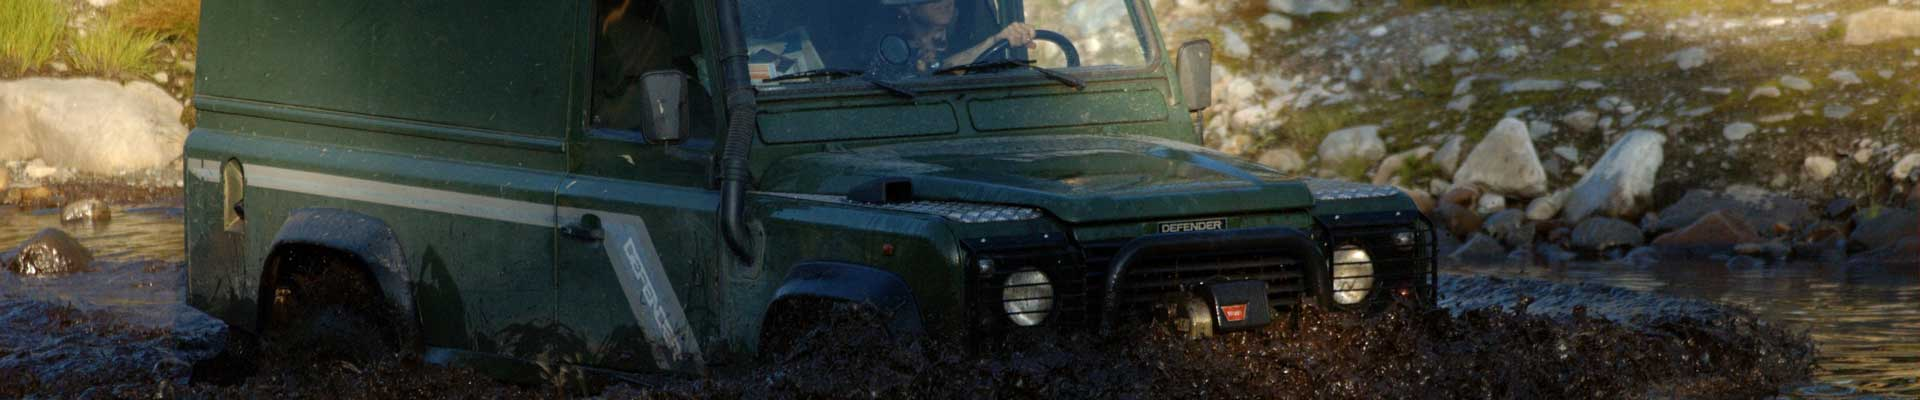 land-rover-insurance